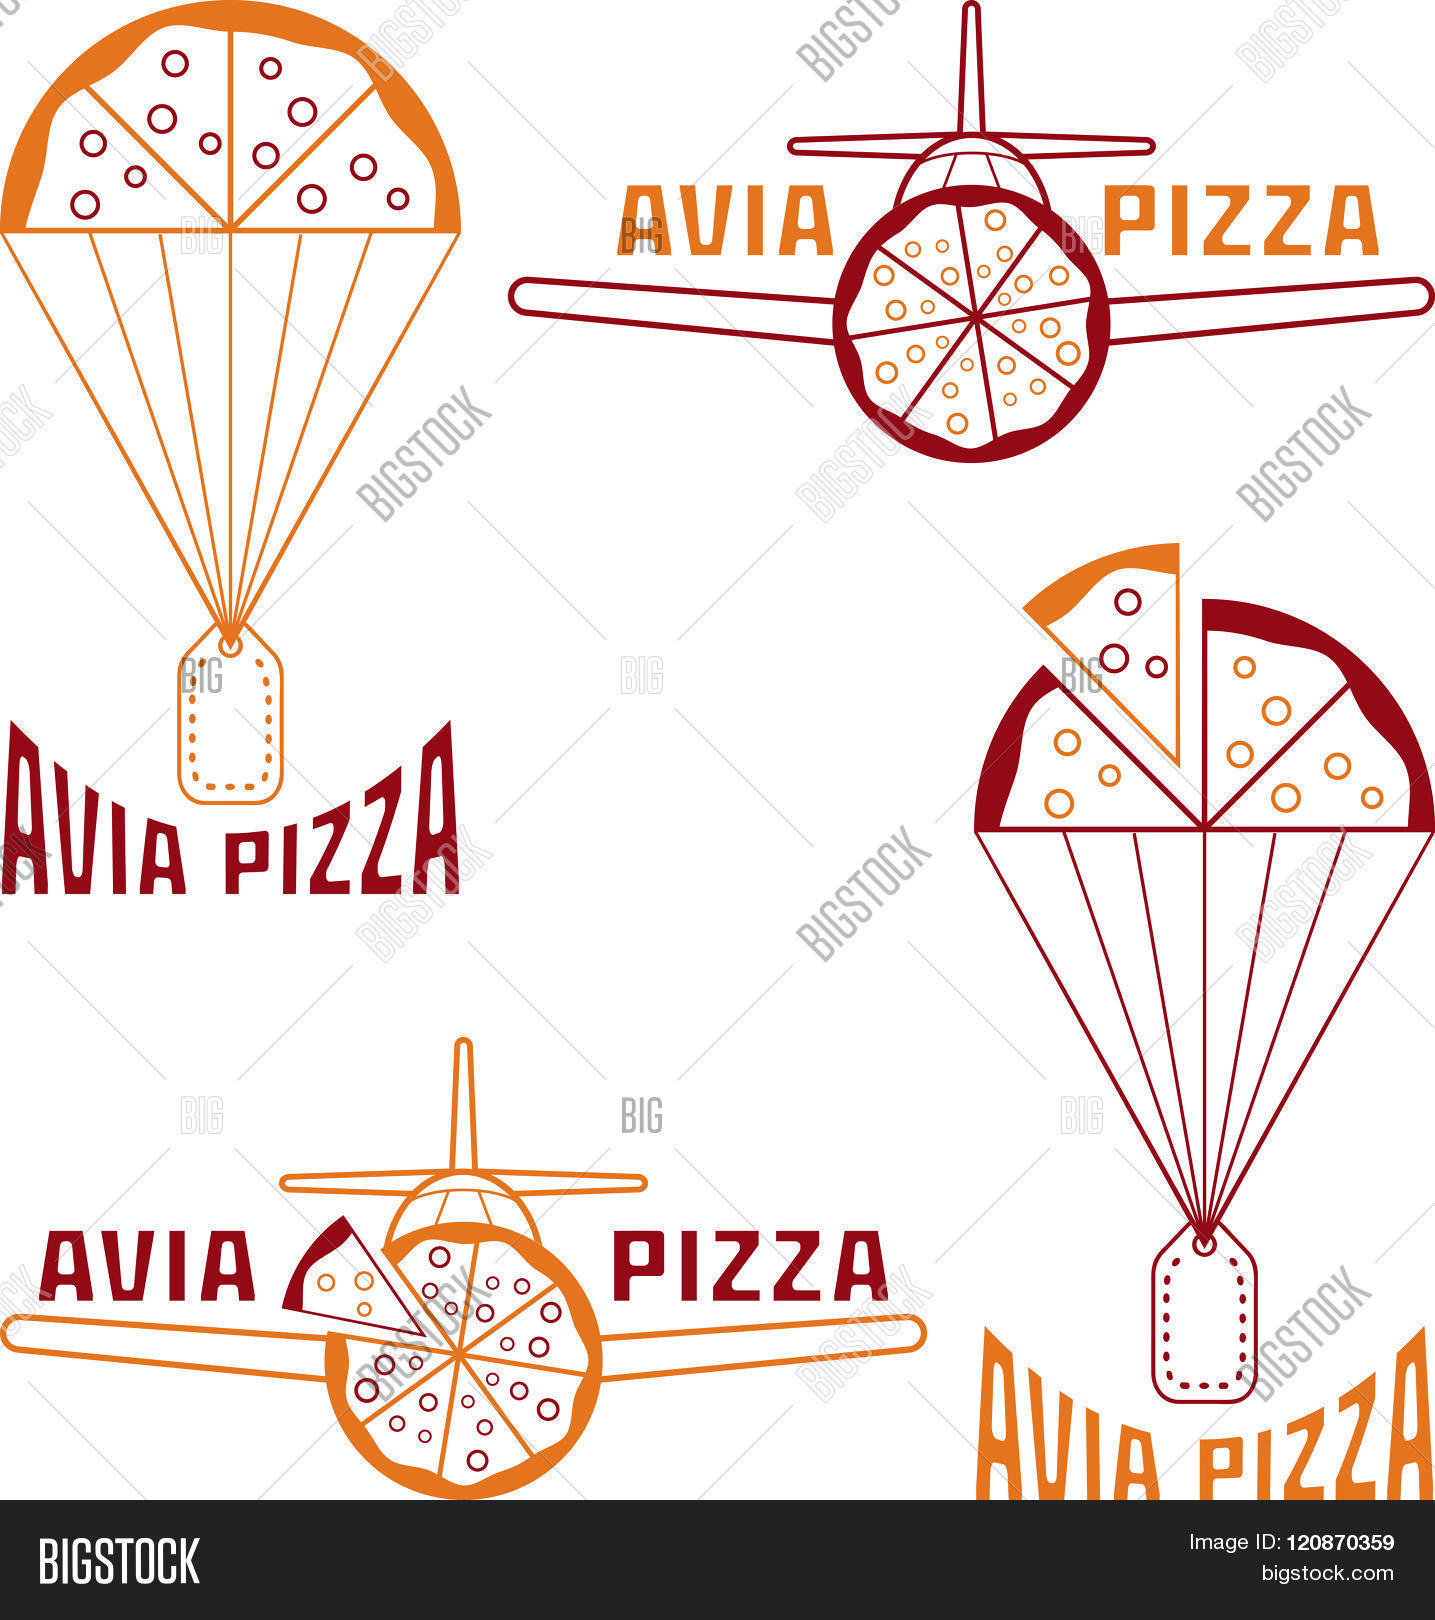 Avia Pizza Vector Illustration Concept . Concept Of Graphic.